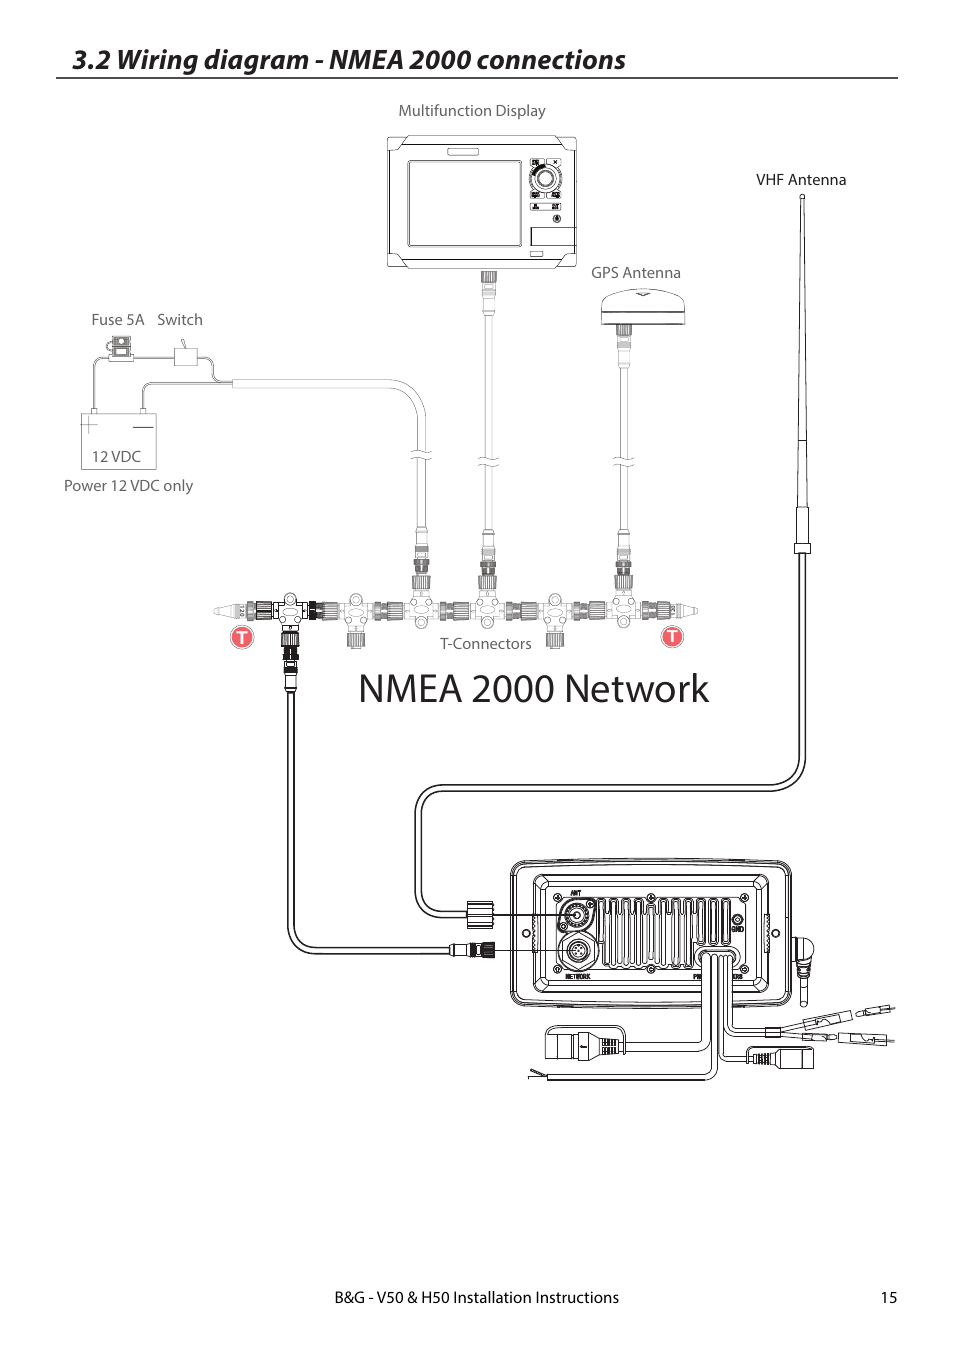 2 wiring diagram - nmea 2000 connections, nmea 2000 network, vhf antenna  link8 vhf | b&g h50 wireless vhf handset user manual | page 15 / 22